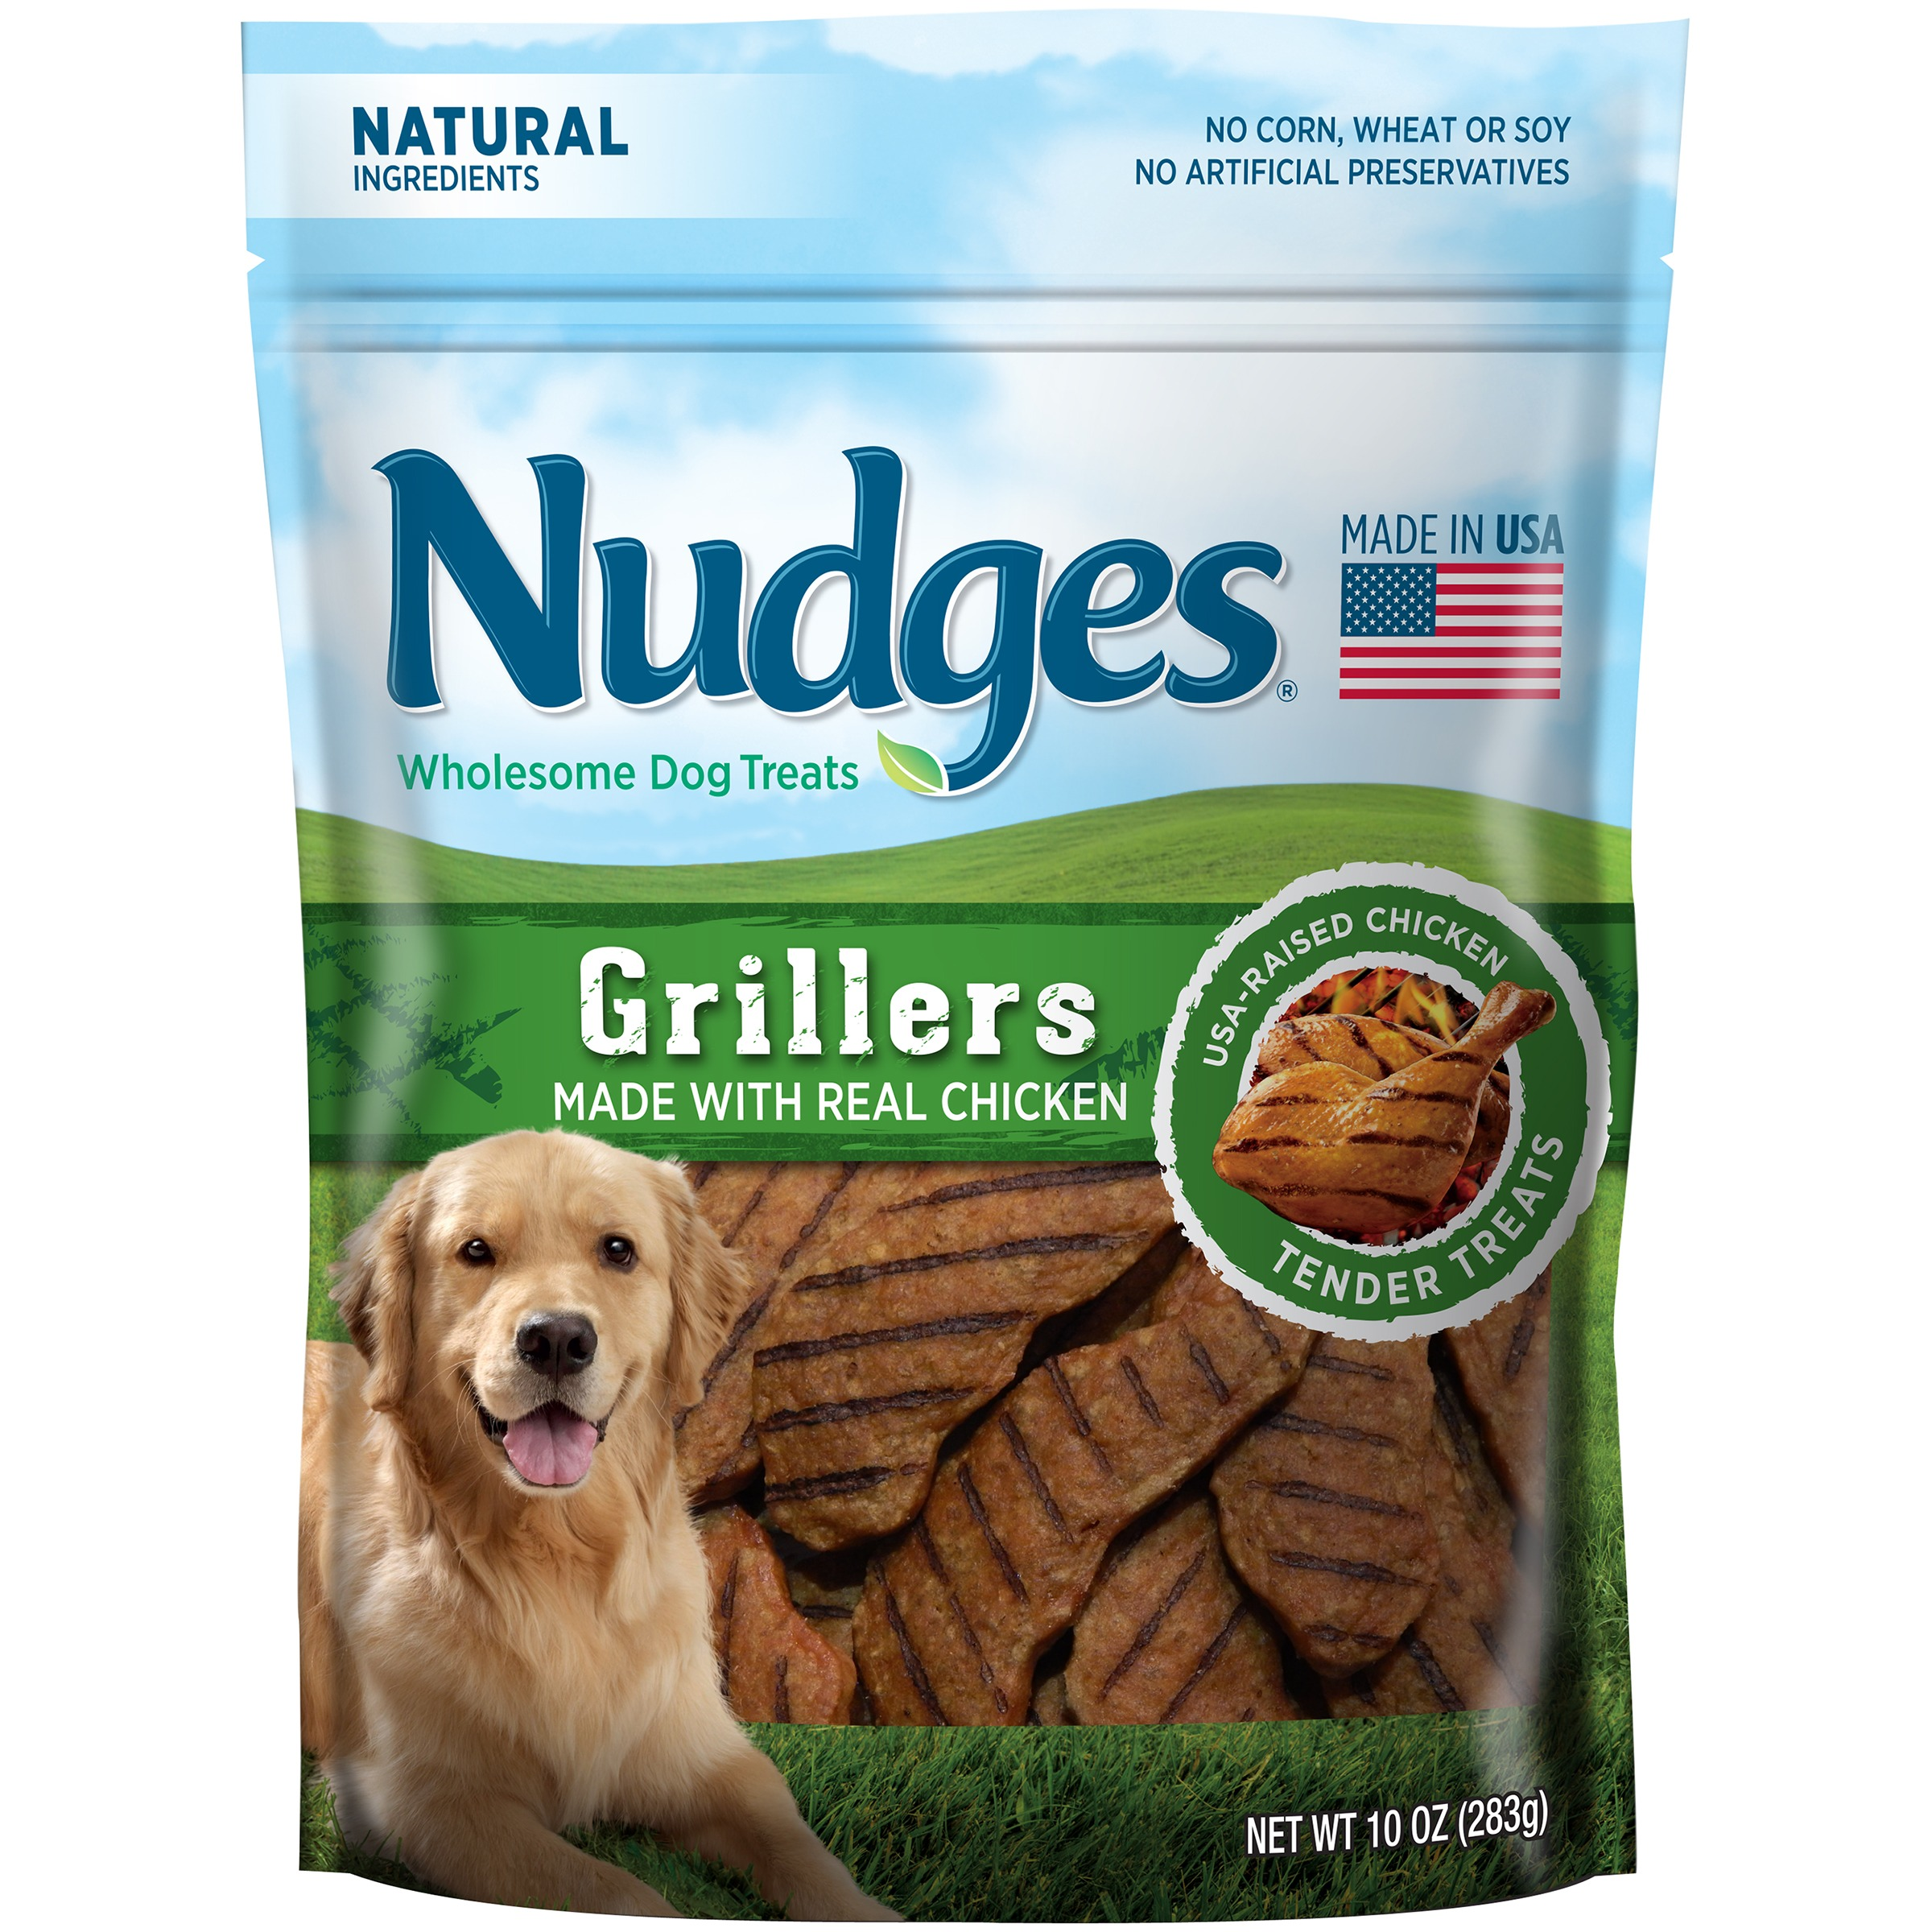 Nudges Grillers Wholesome Dog Treats 10 oz. Pouch by Tyson Pet Products Inc.